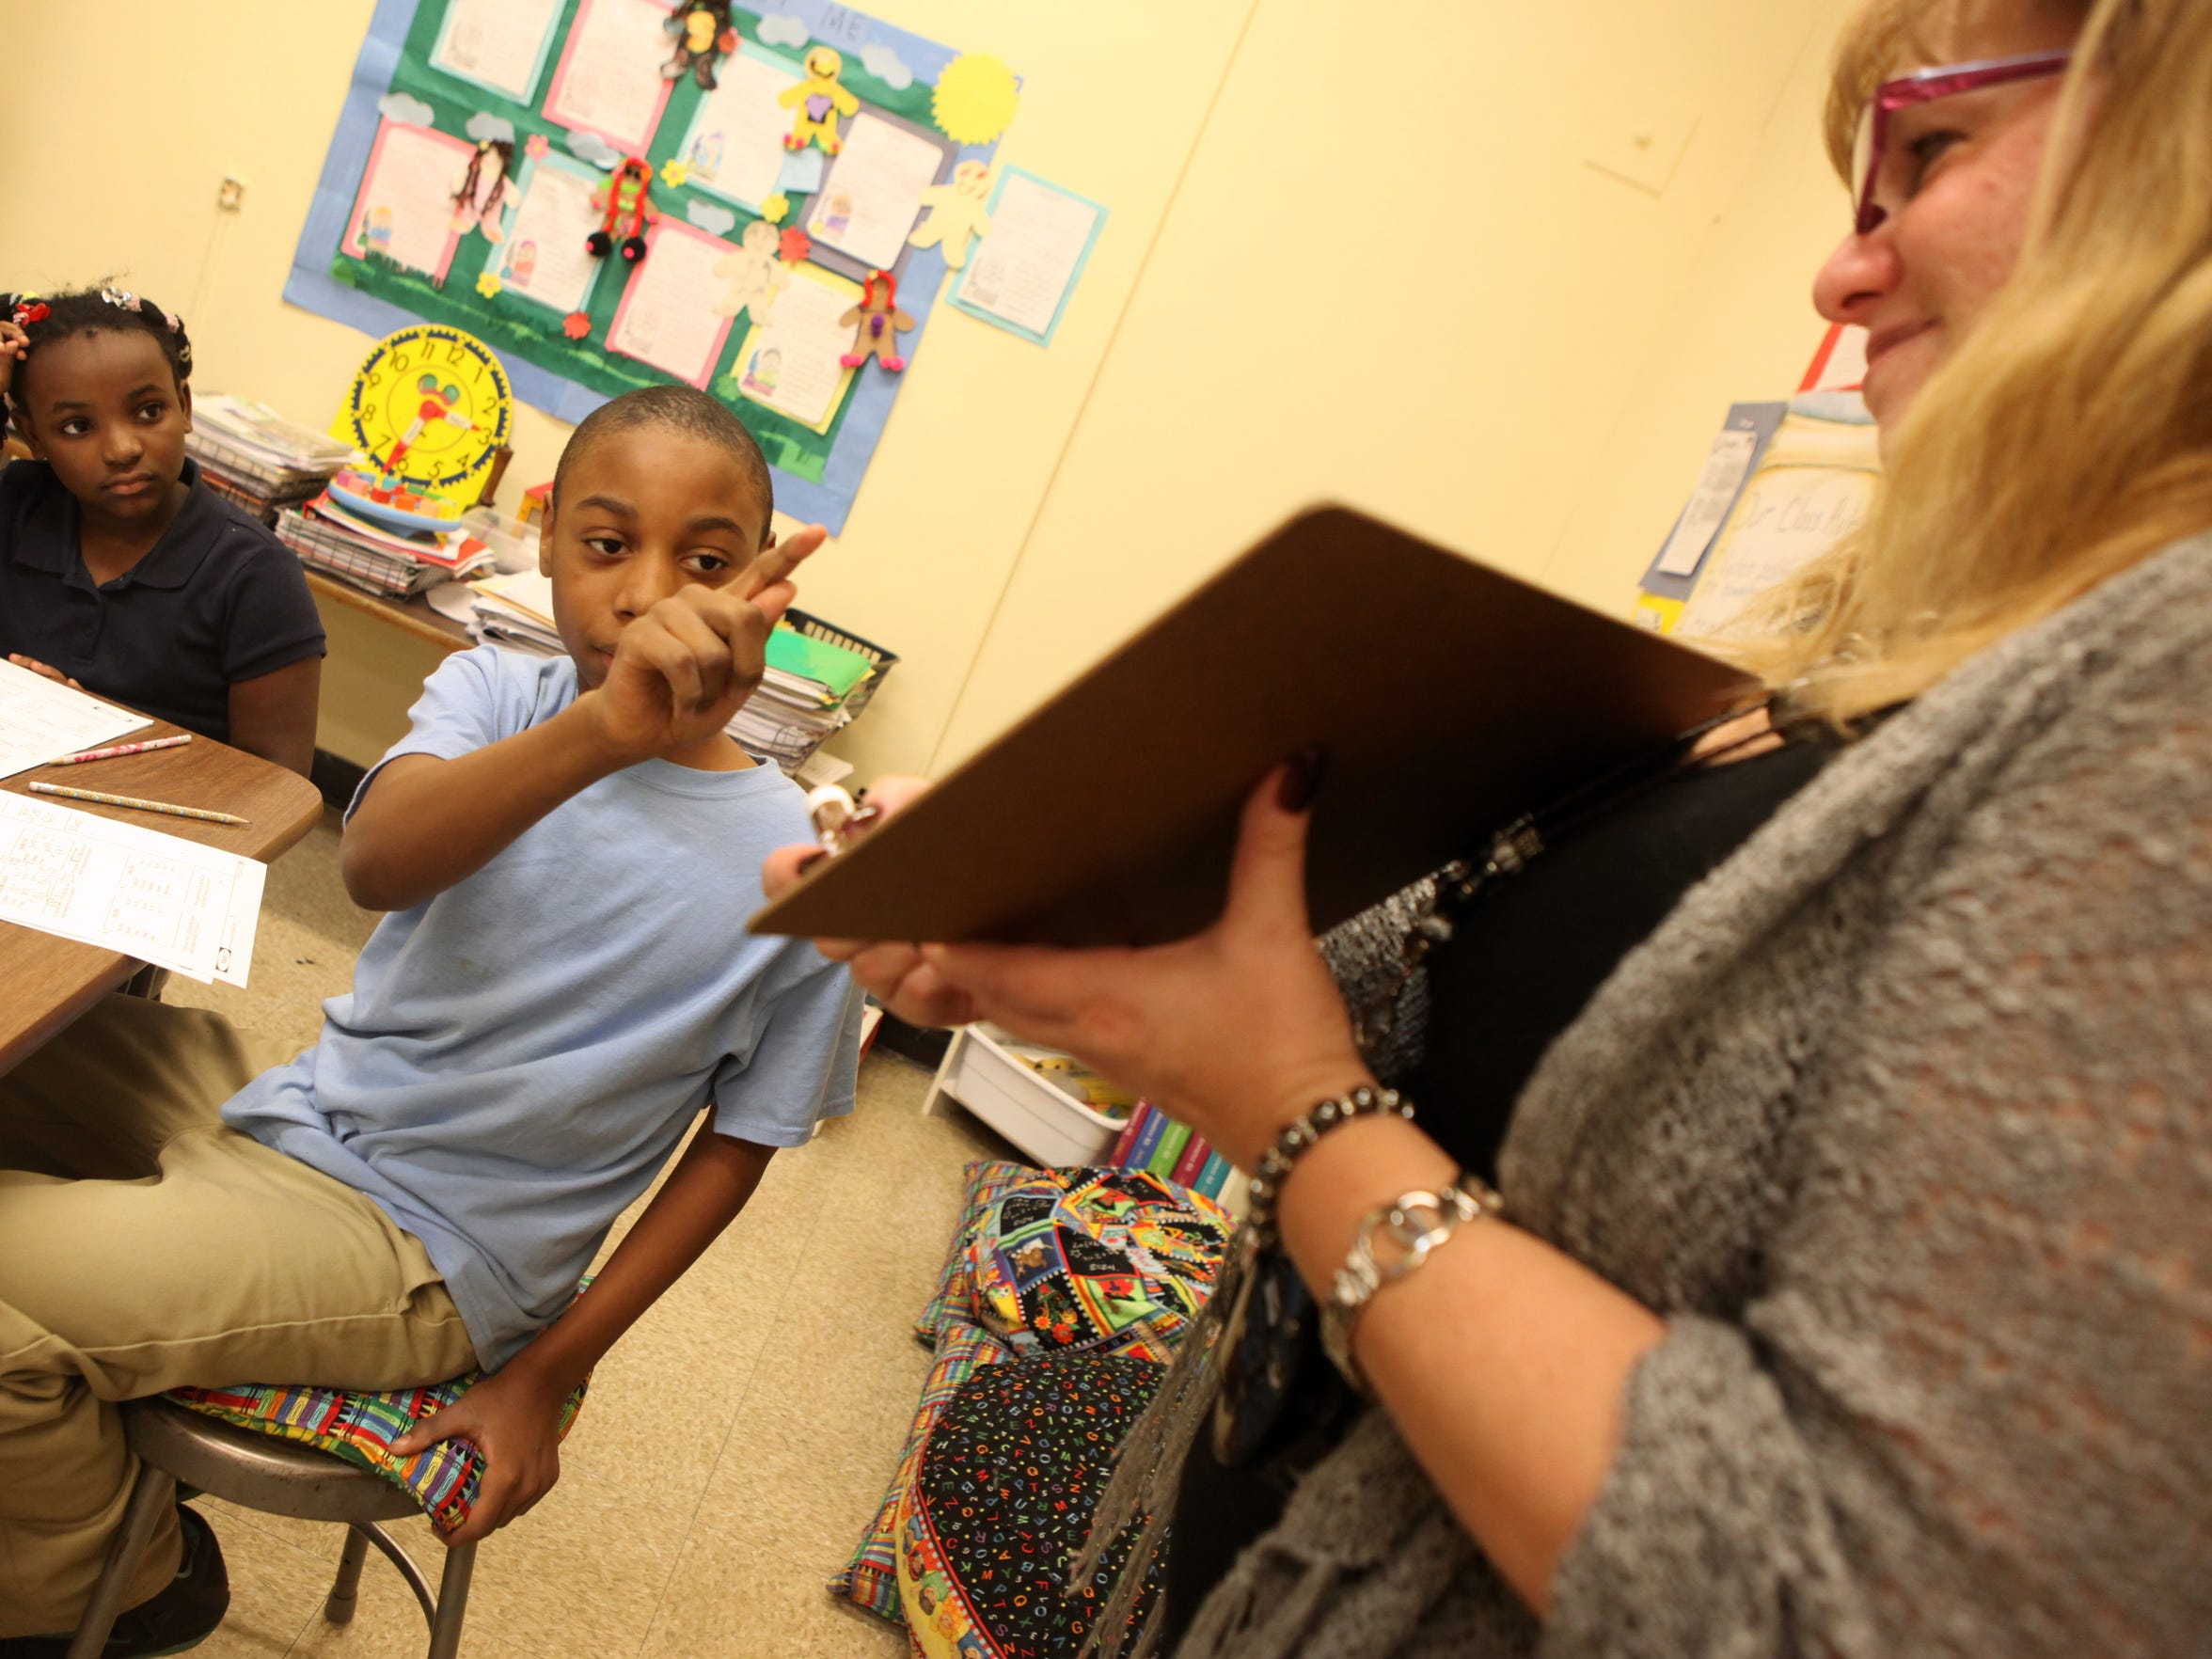 Trevyan Rowe points toward MeChele Markajani, a consultant teacher at School 12, in a special education class in February 2015.